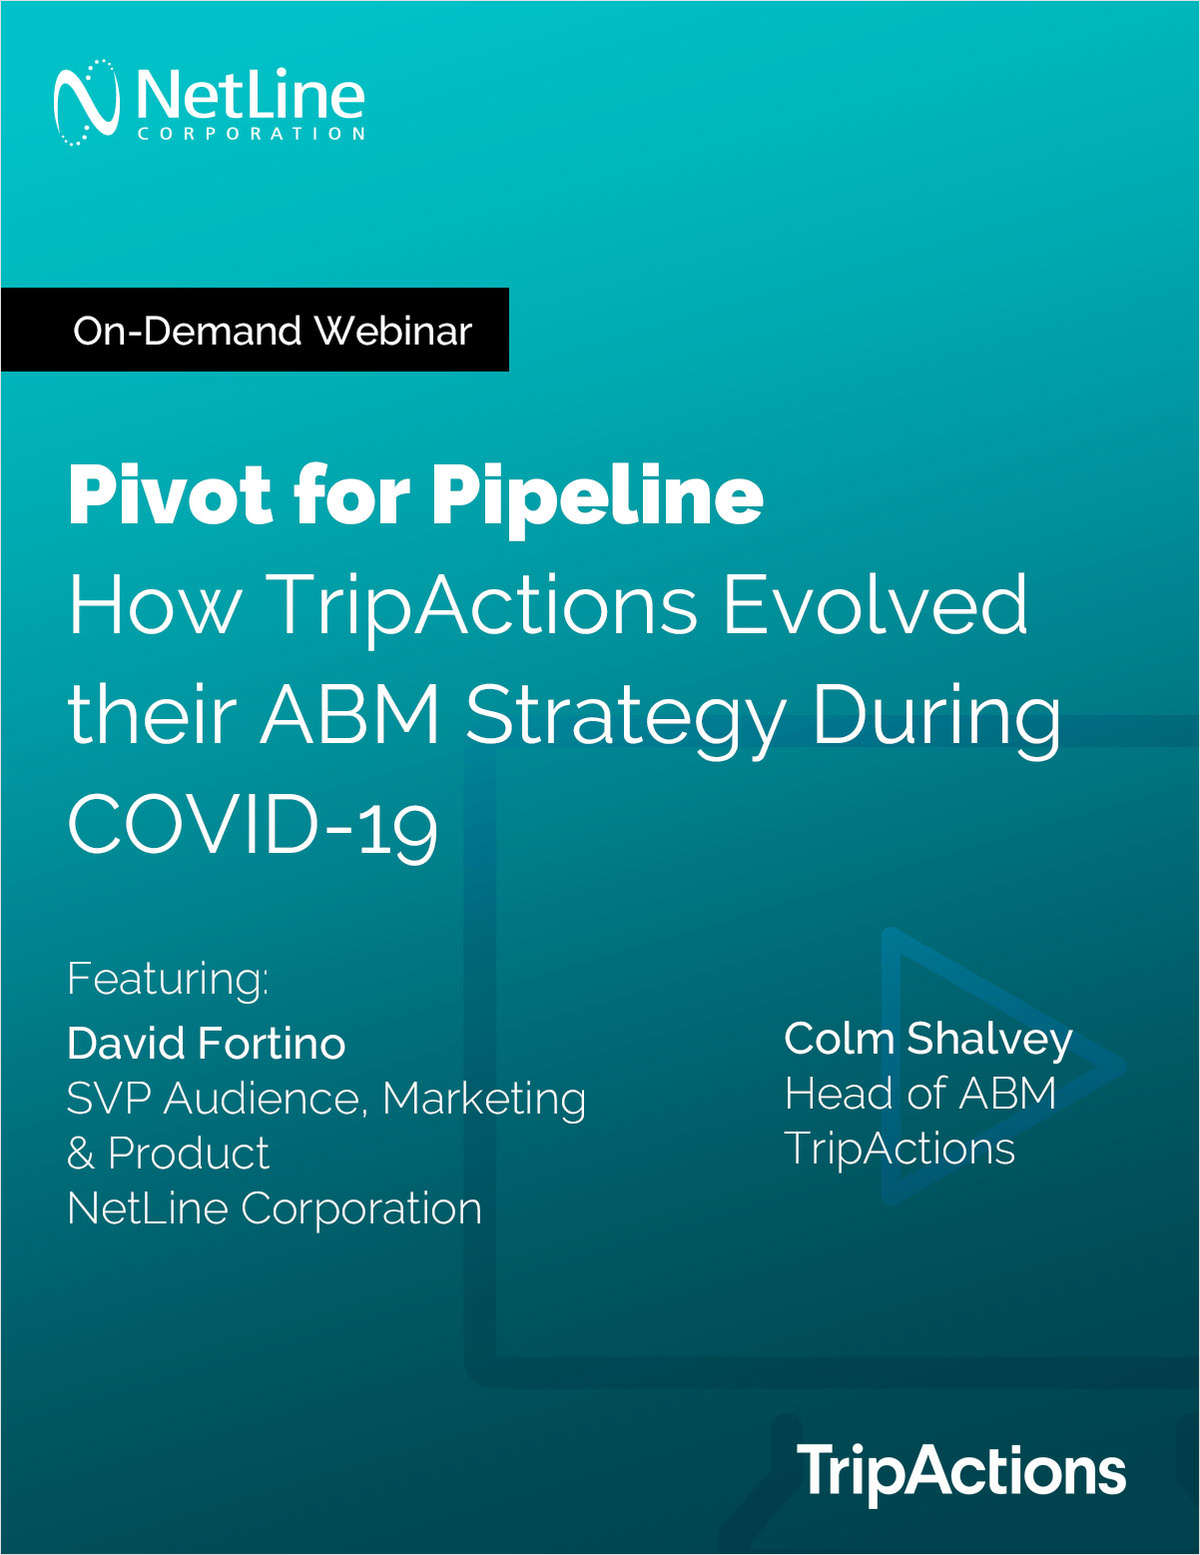 Pivot for Pipeline: How TripActions Evolved their ABM Strategy During COVID-19